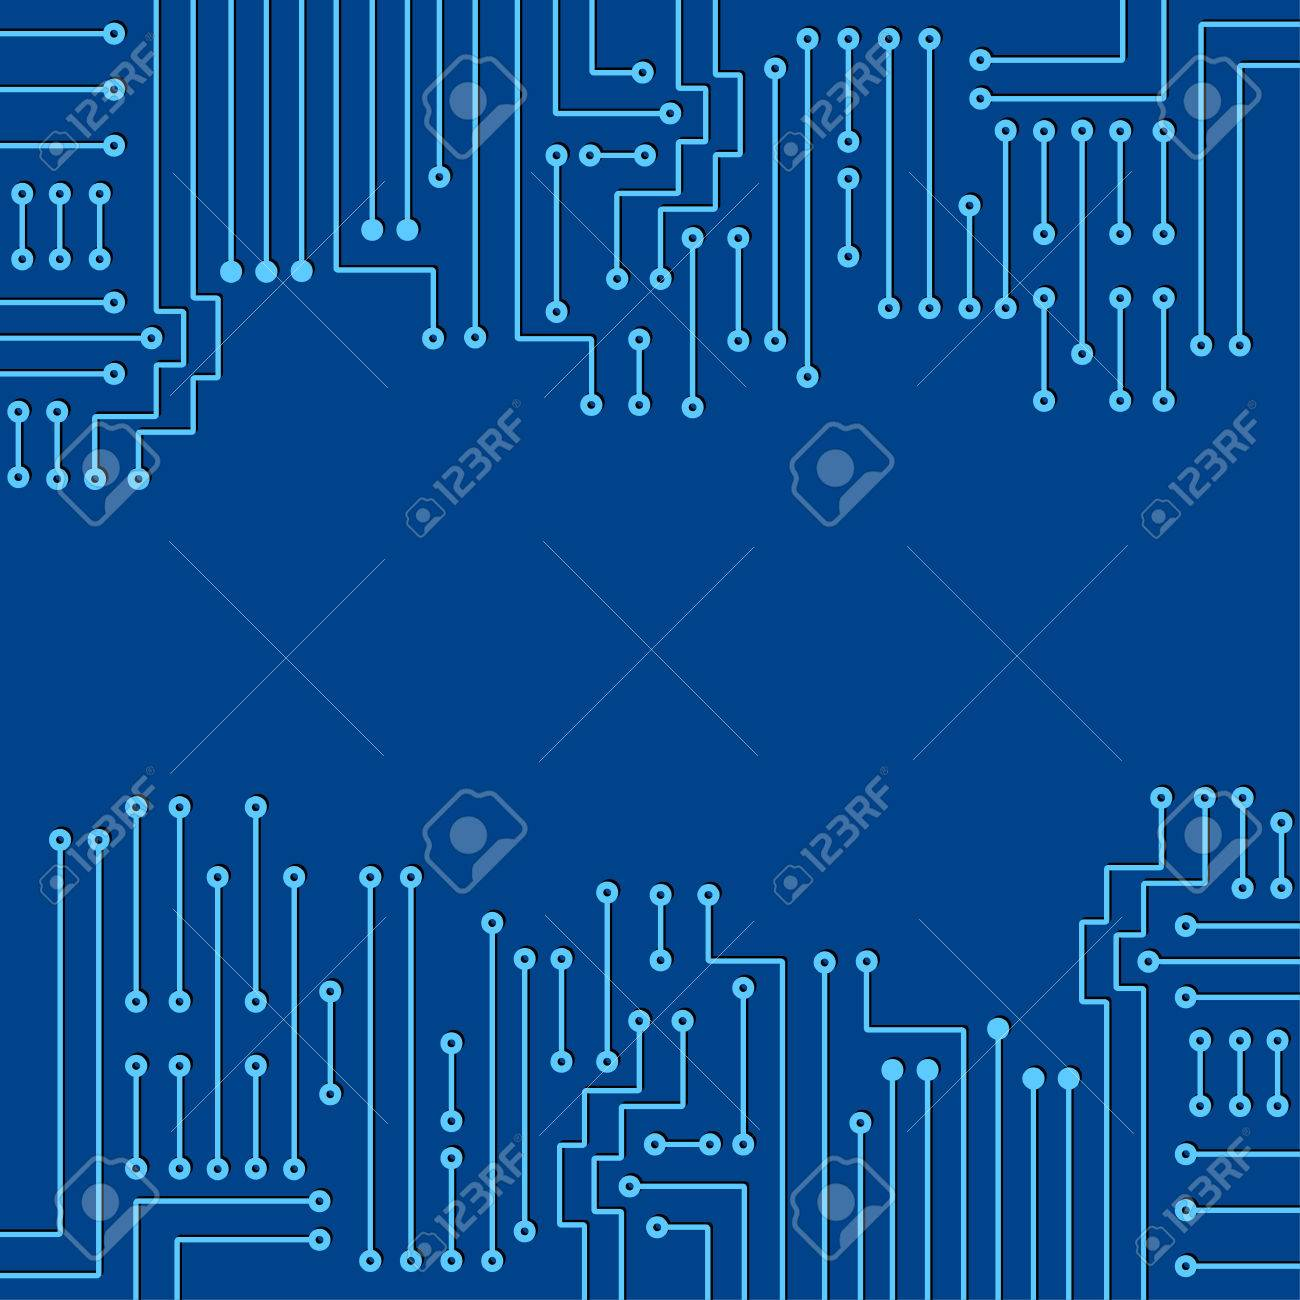 Drawing Modern Electronic Circuit On Blue Background Royalty Free ...